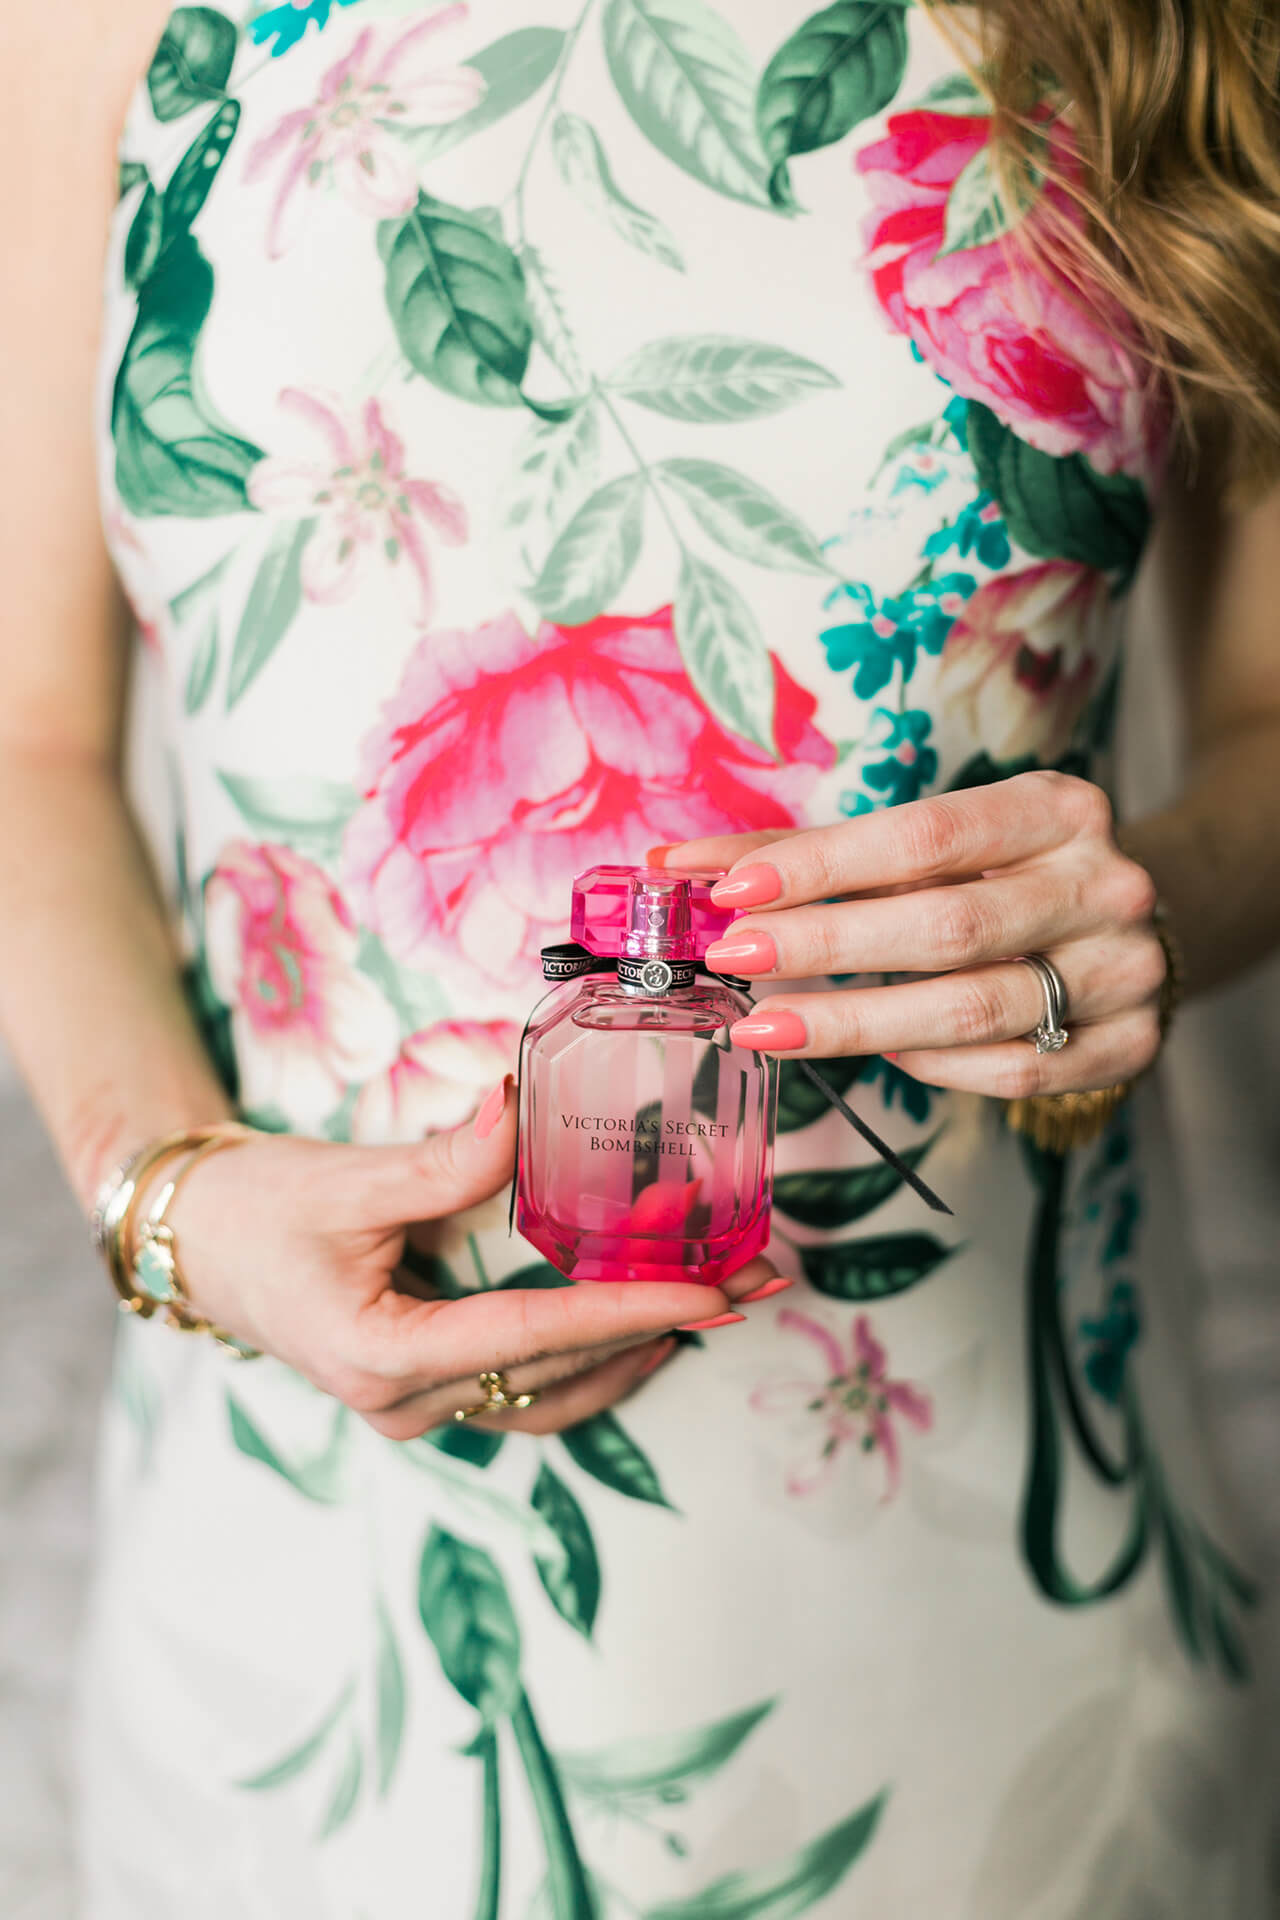 the most popular perfume from victoria's secret